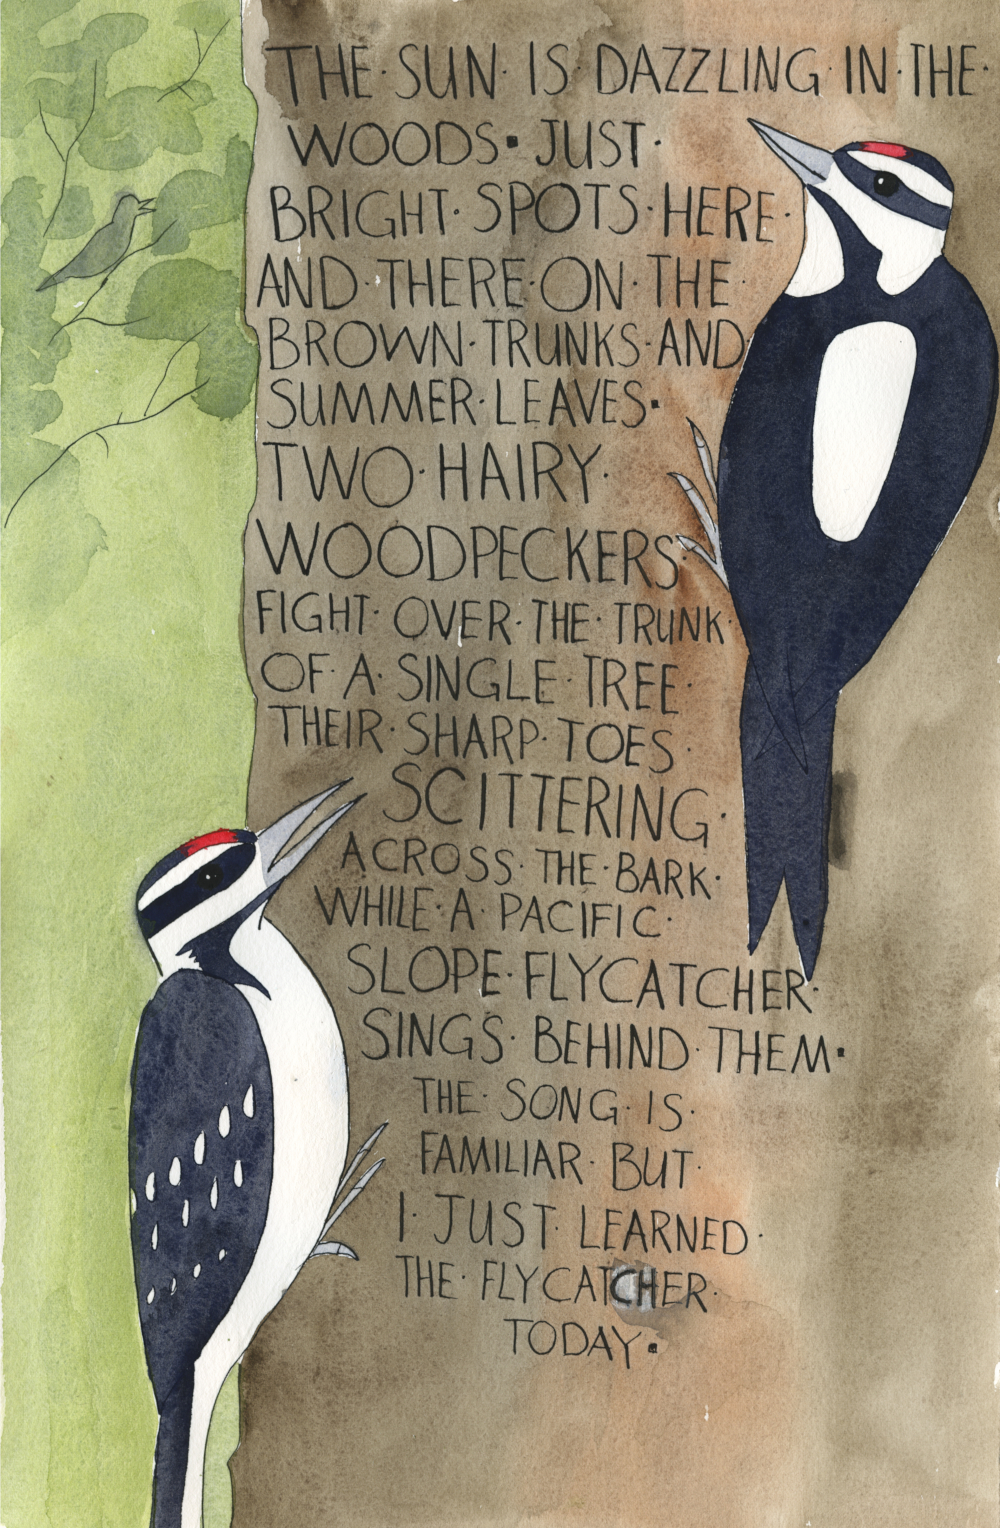 "Illustration of 2 hairy woodpeckers on a tree. Hand written text reads: ""The sun is dazzling in the woods. Just bright spots here and there  on the brown trunks and the summer leaves.  Two hairy woodpeckers fight over a single tree trunk, their sharp toes scittering across the bark while a Pacific Slope Flycatcher sings behind them.  The song is familiar but I just learned of the flycatcher today."""